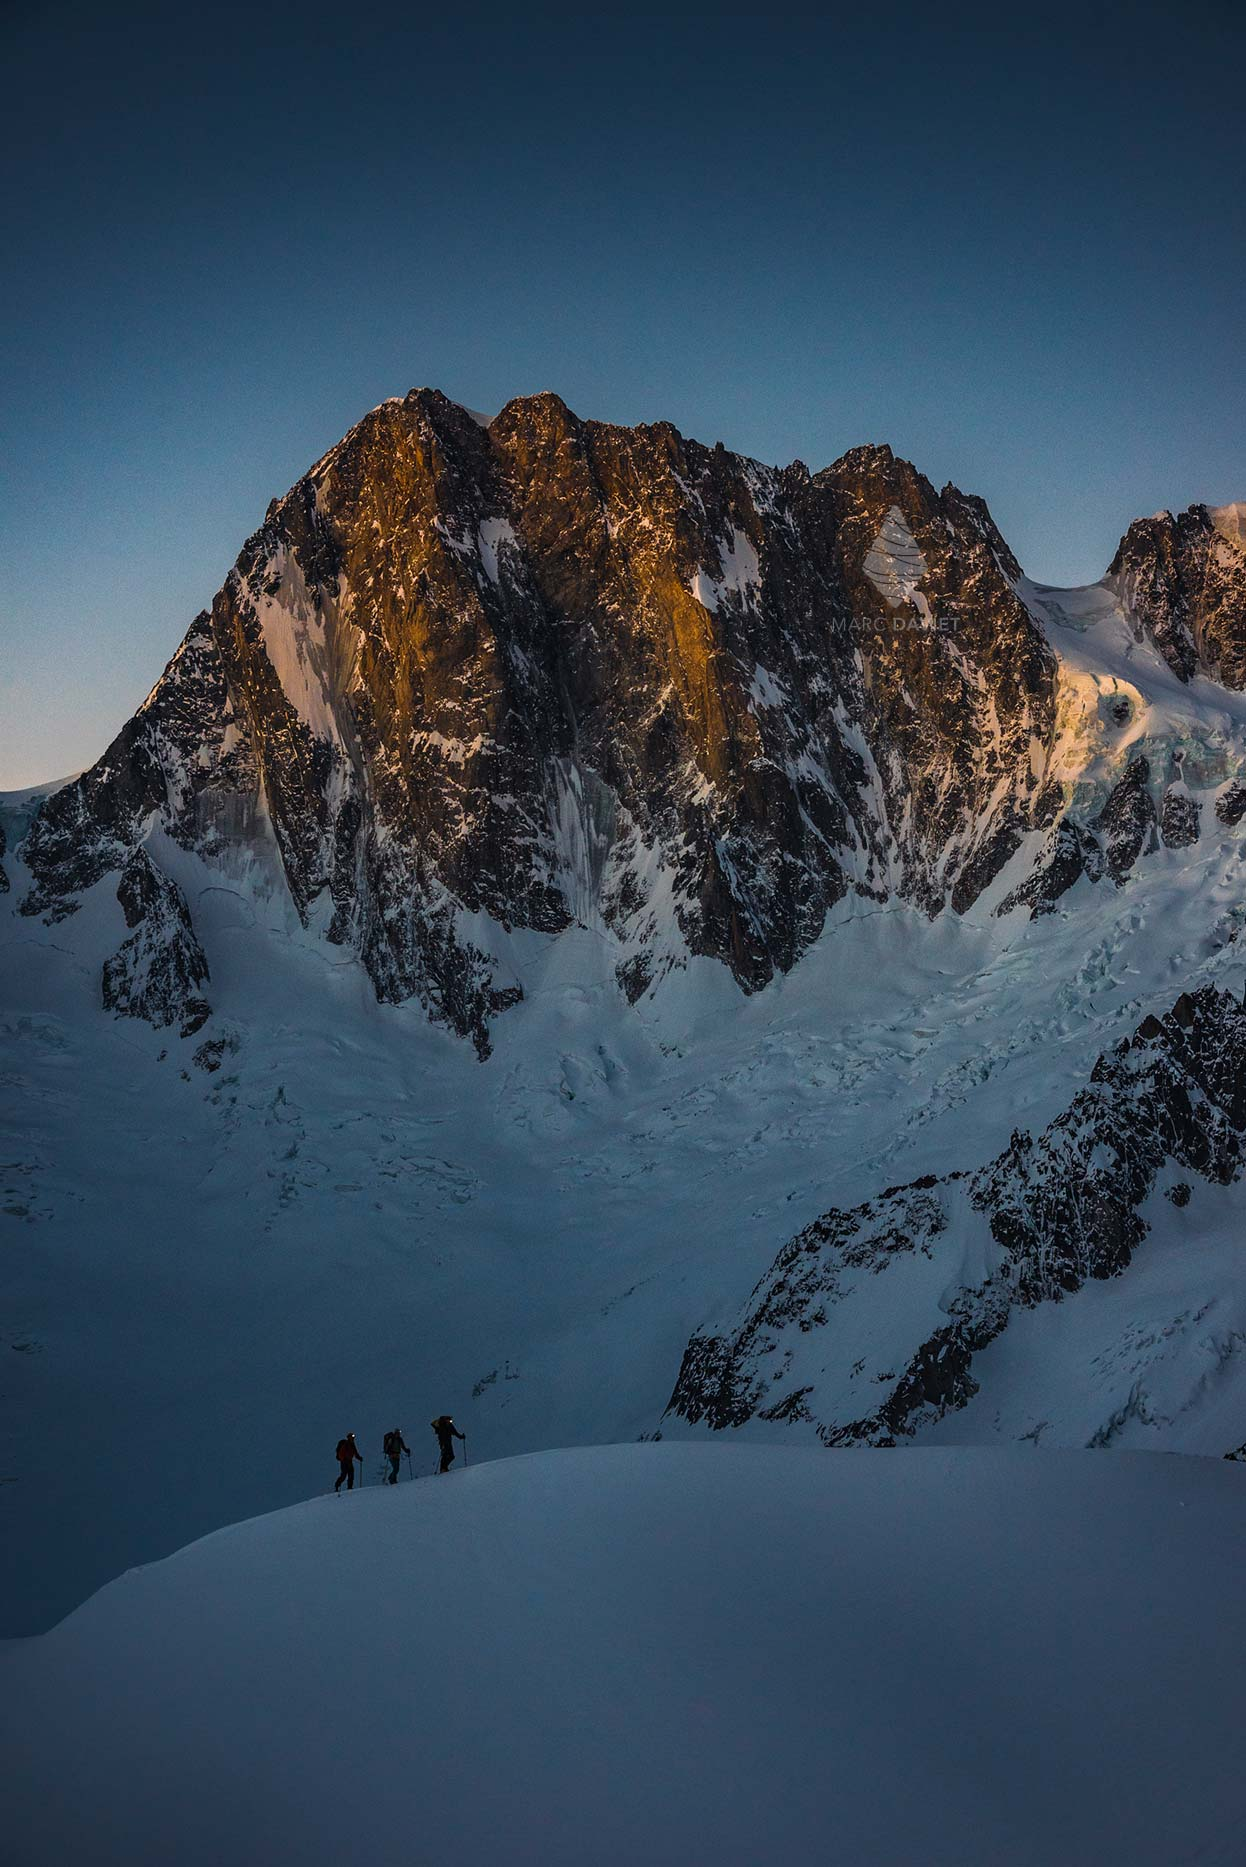 Grandes Jorasses with skiers